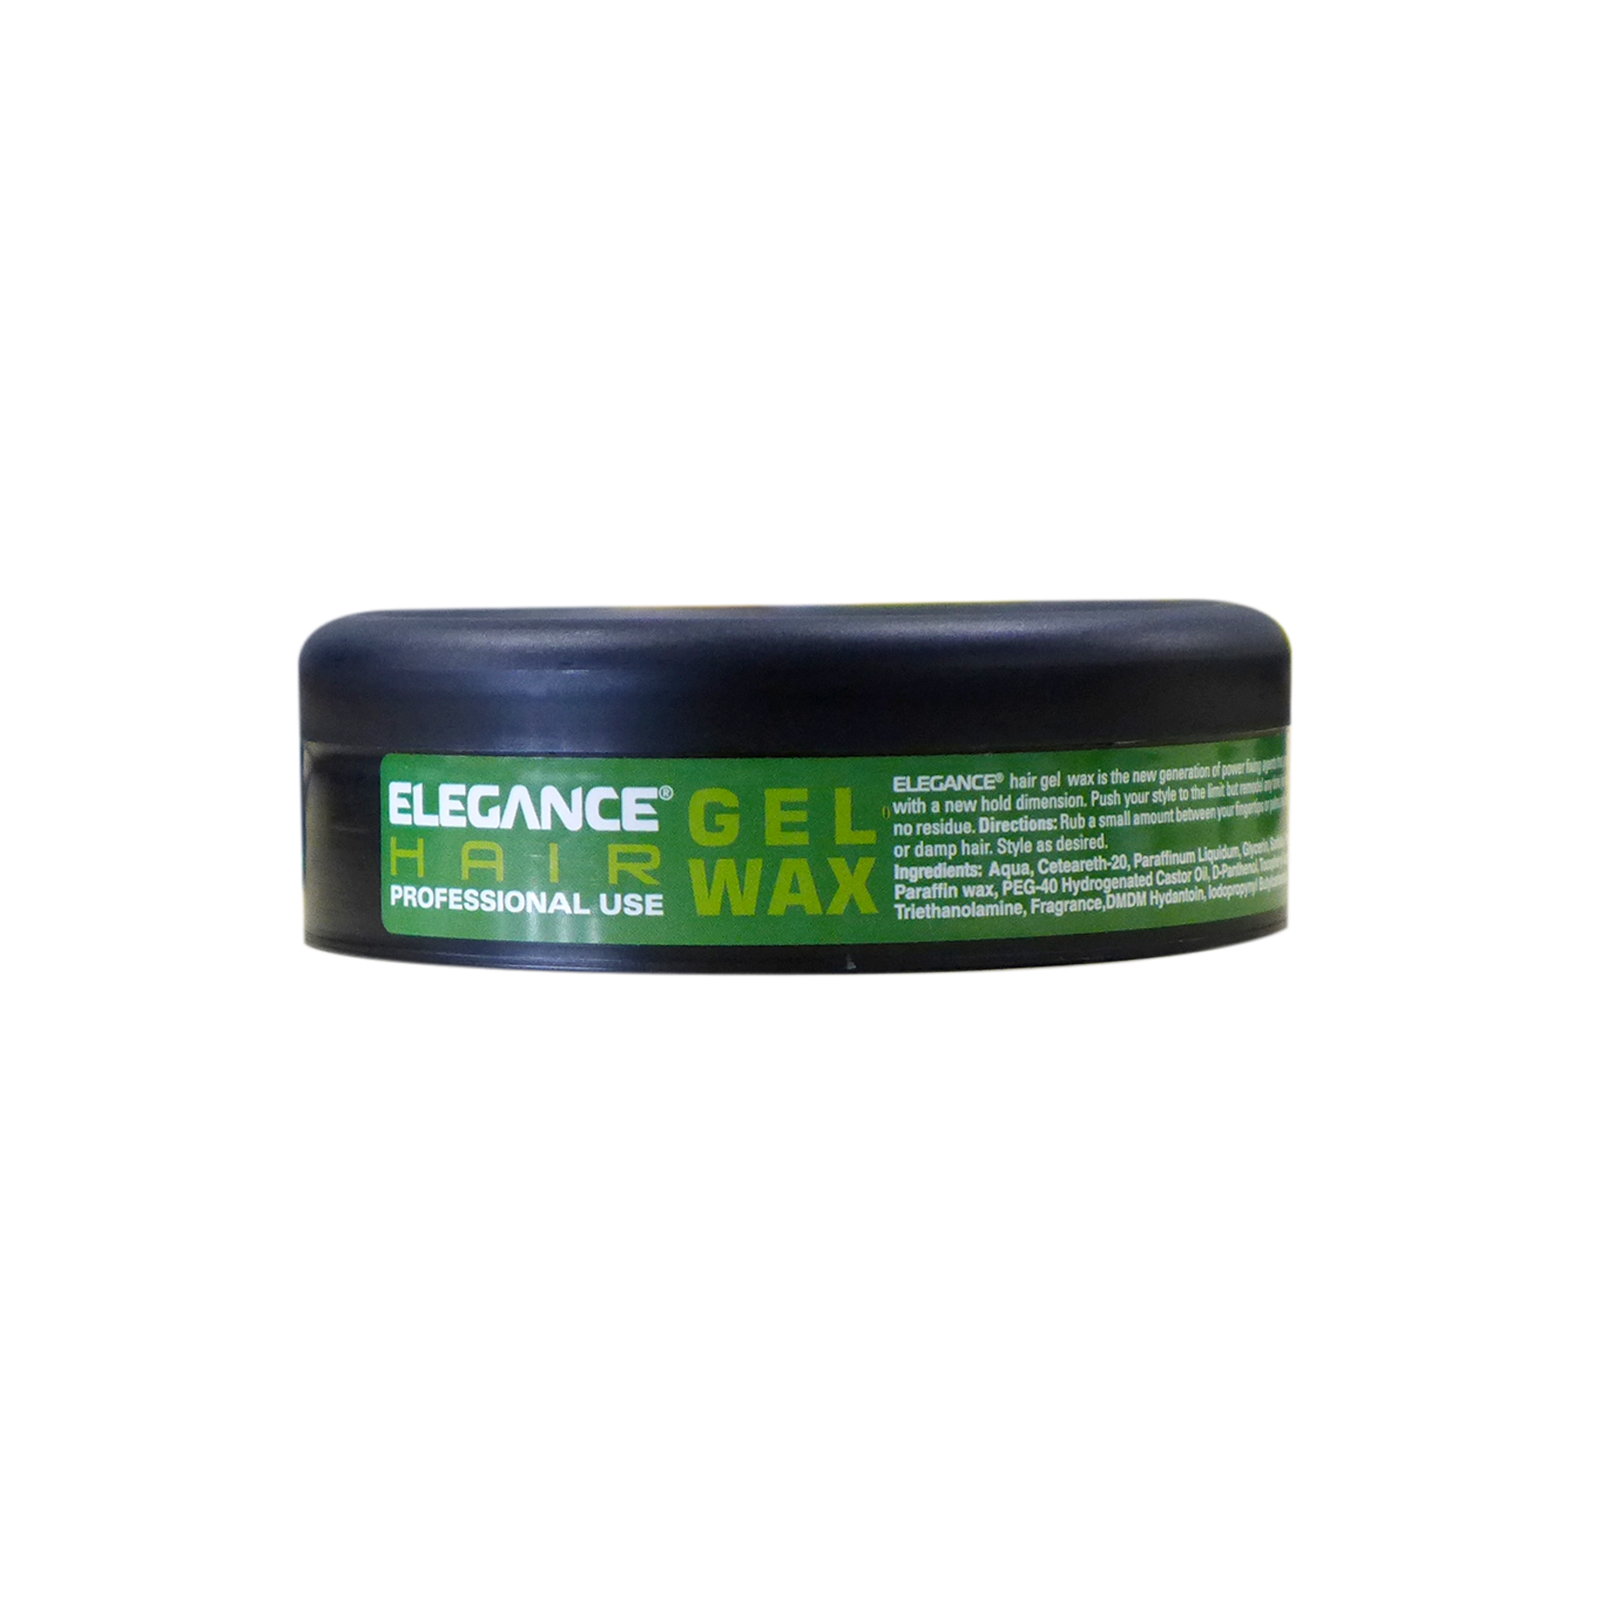 Elegance Gel Wax Collection Military Pomade 140g | Gogobli